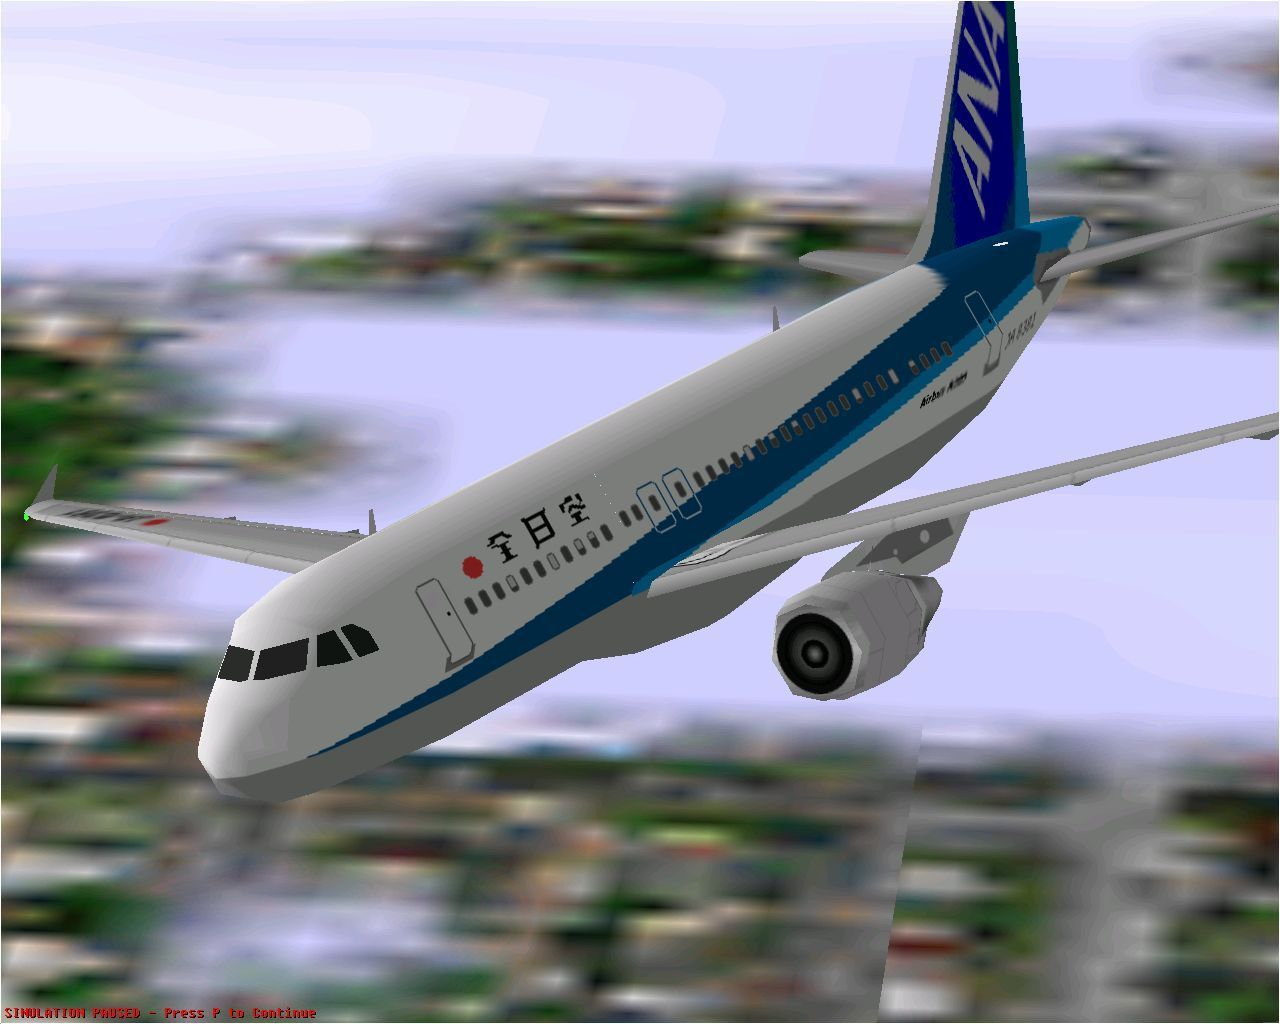 Airbus 2000: Special Edition Windows The Airbus A320-211 in Microsoft Flight Simulator 98 flying in All Nippon Airways livery